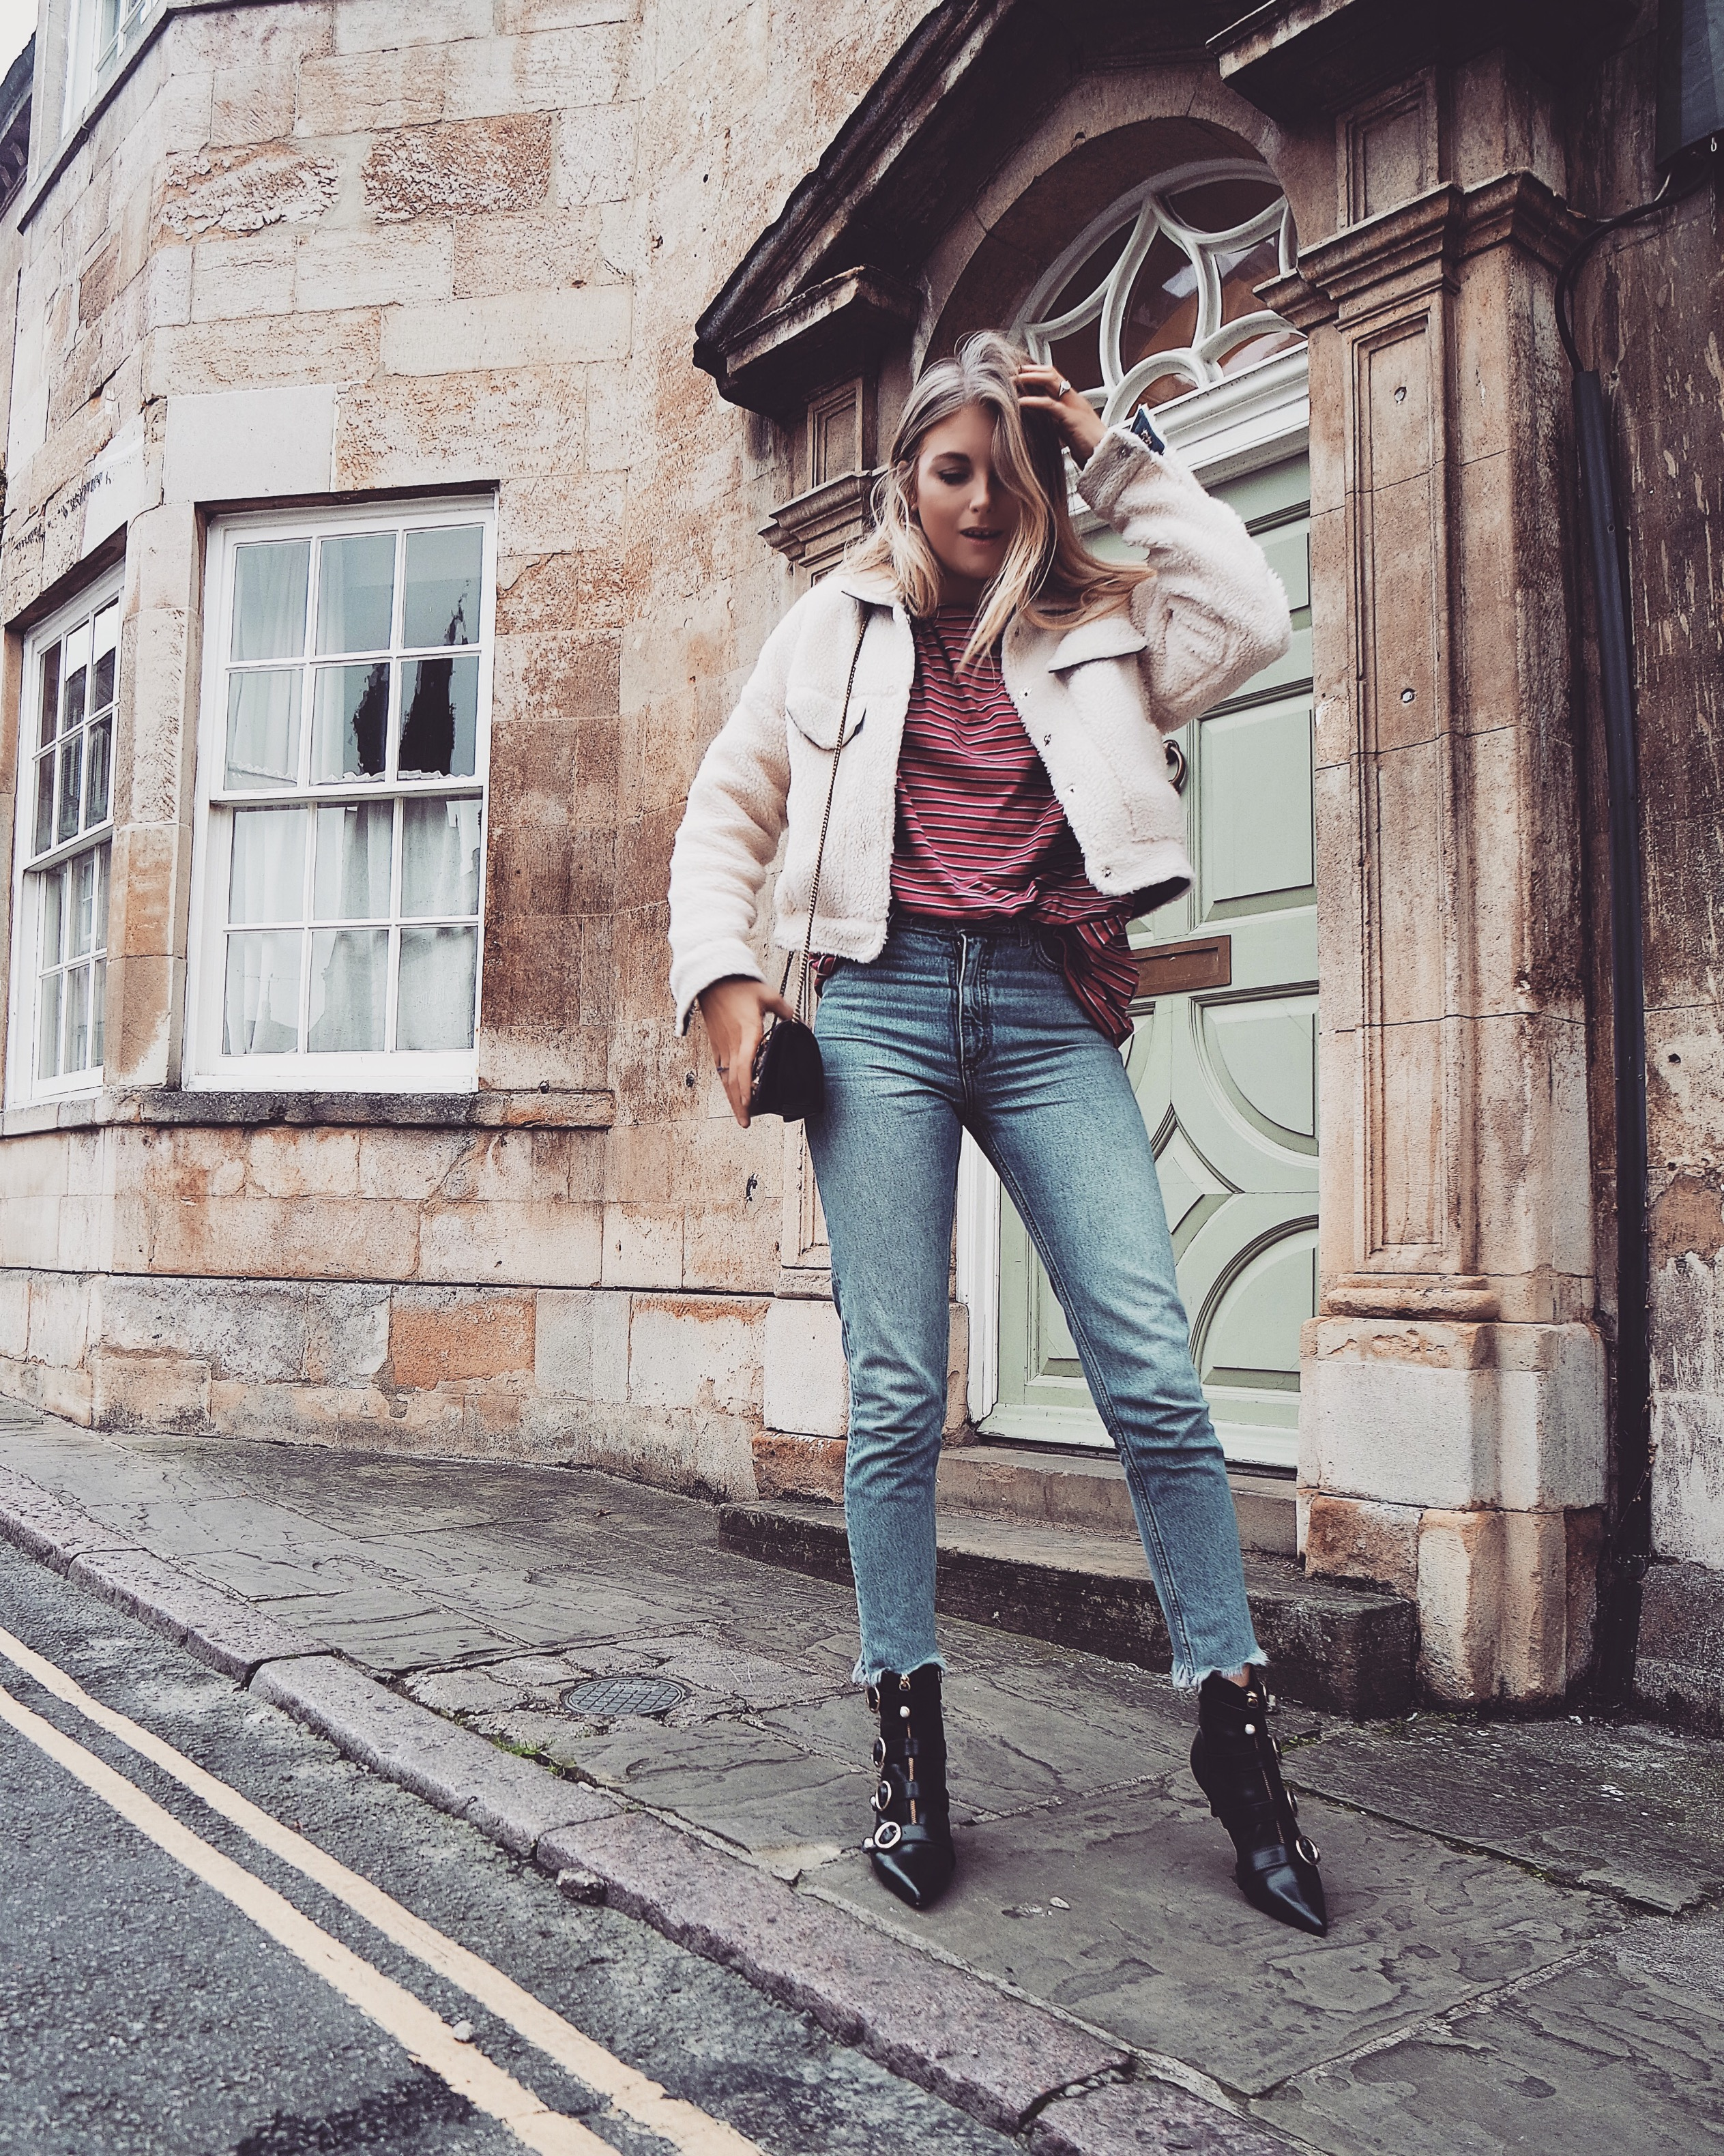 Buckle Boots - Autumn Outfit Inspiration